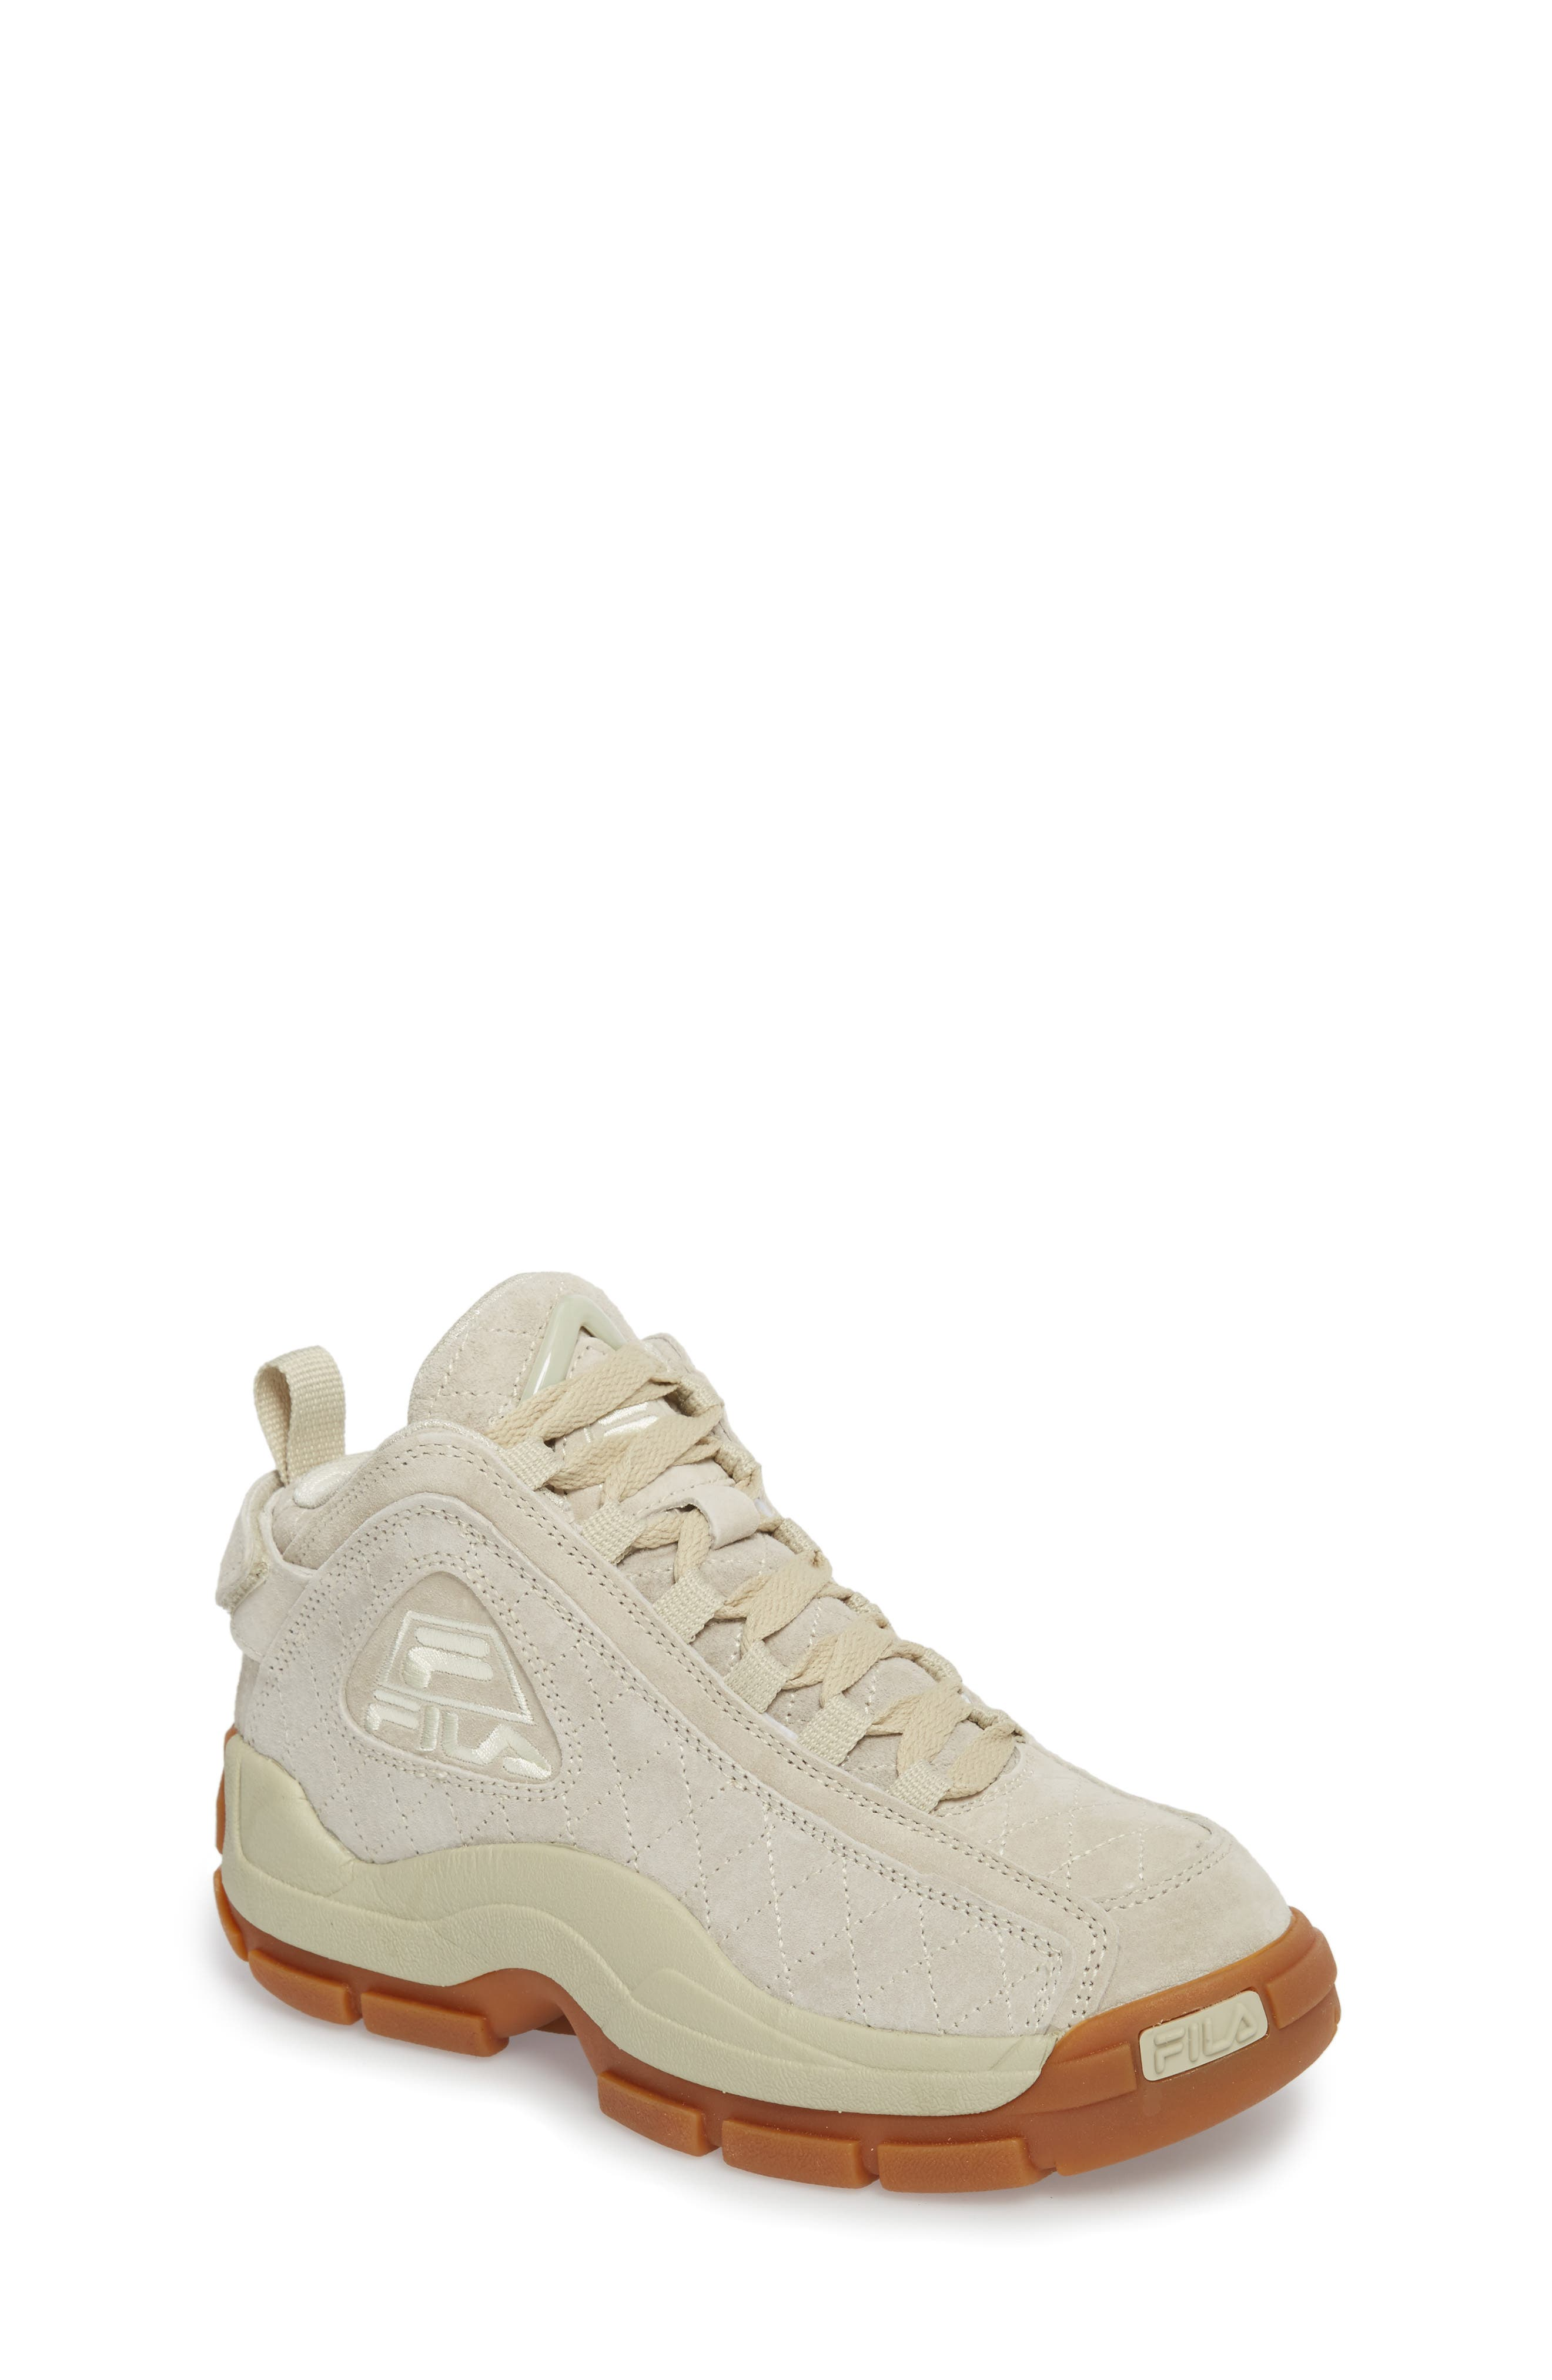 96 Quilted Mid-Top Sneaker,                             Main thumbnail 1, color,                             Cream/ Gum